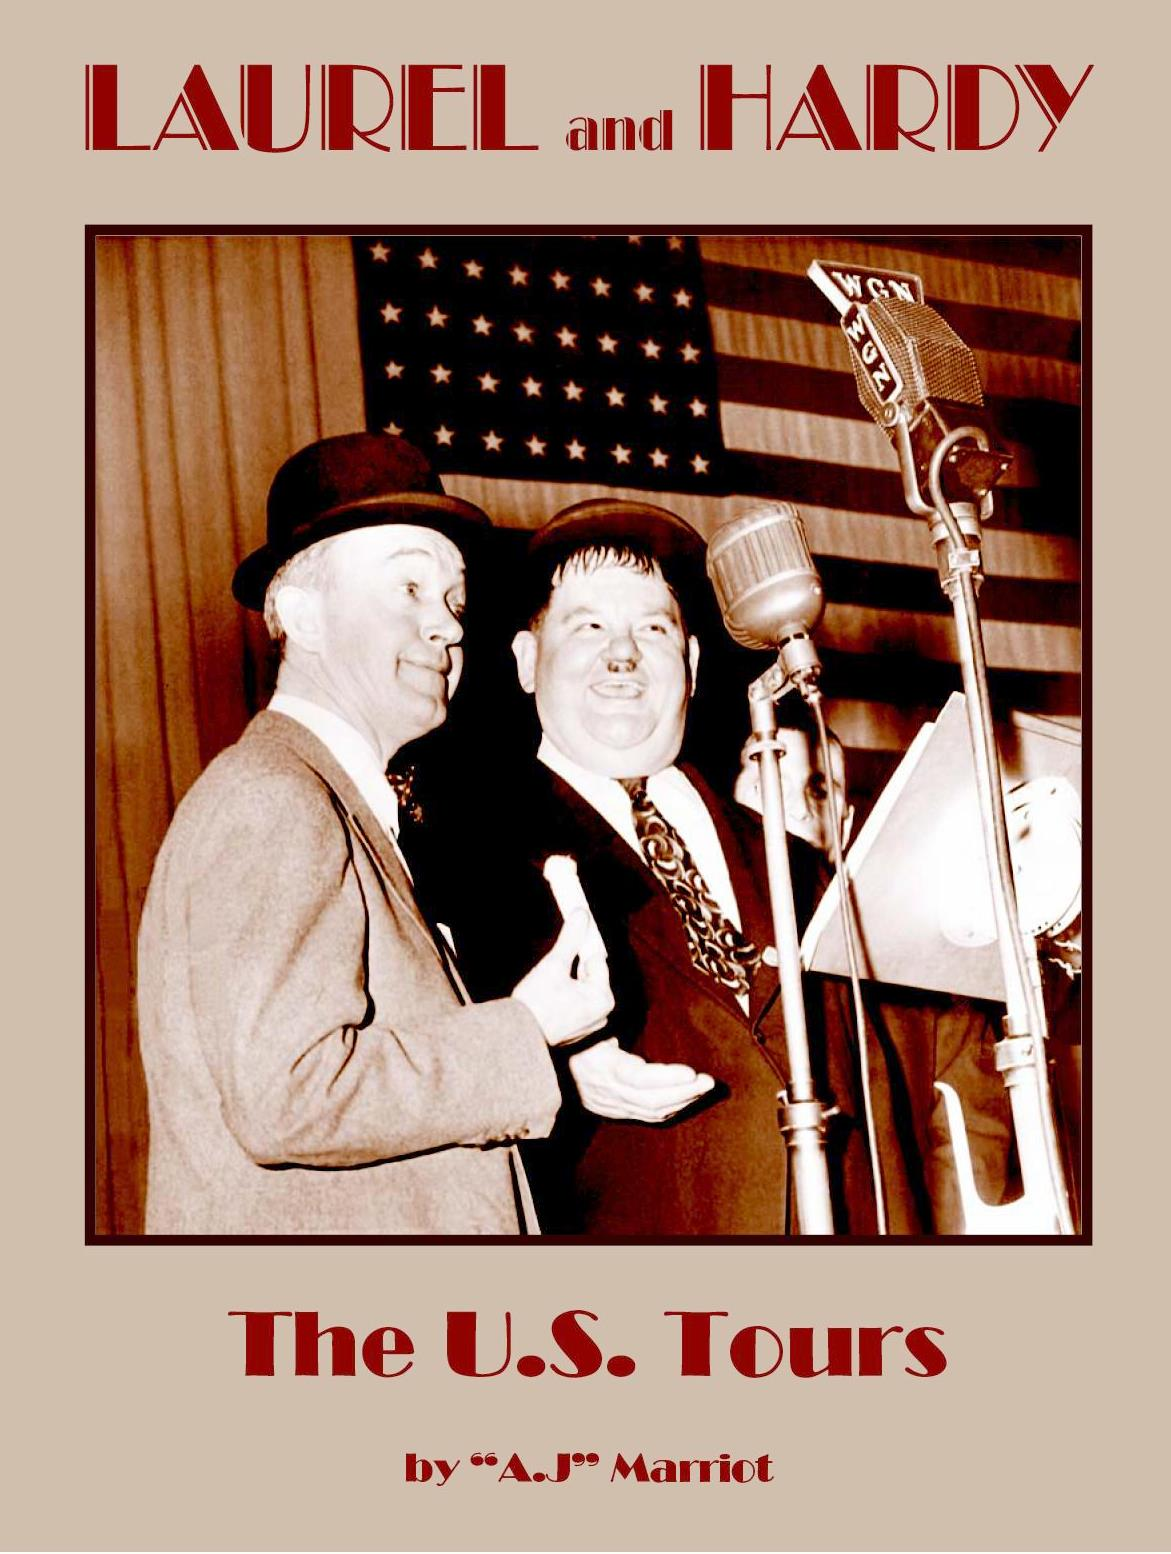 AJ Marriot signs Laurel and Hardy the US TOURS books